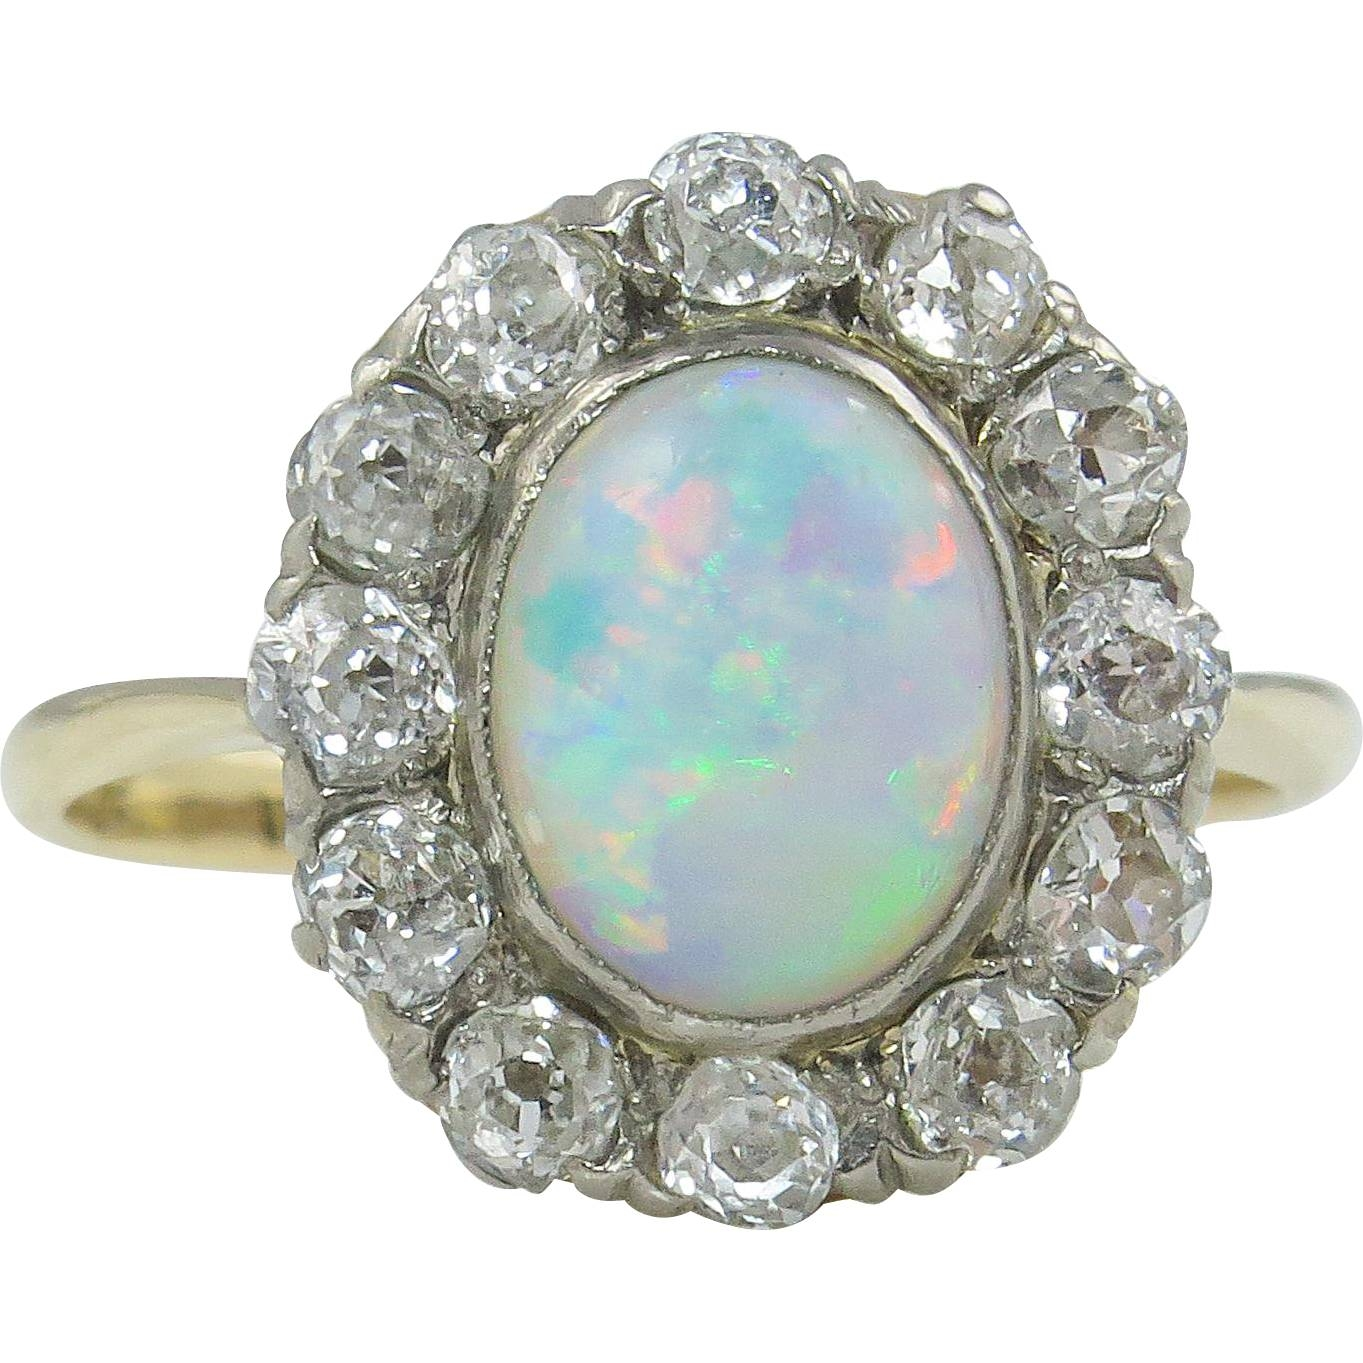 2.73Ct Antique Vintage Australian Opal Diamond Engagement Wedding Within Australia Opal Engagement Rings (Gallery 7 of 15)